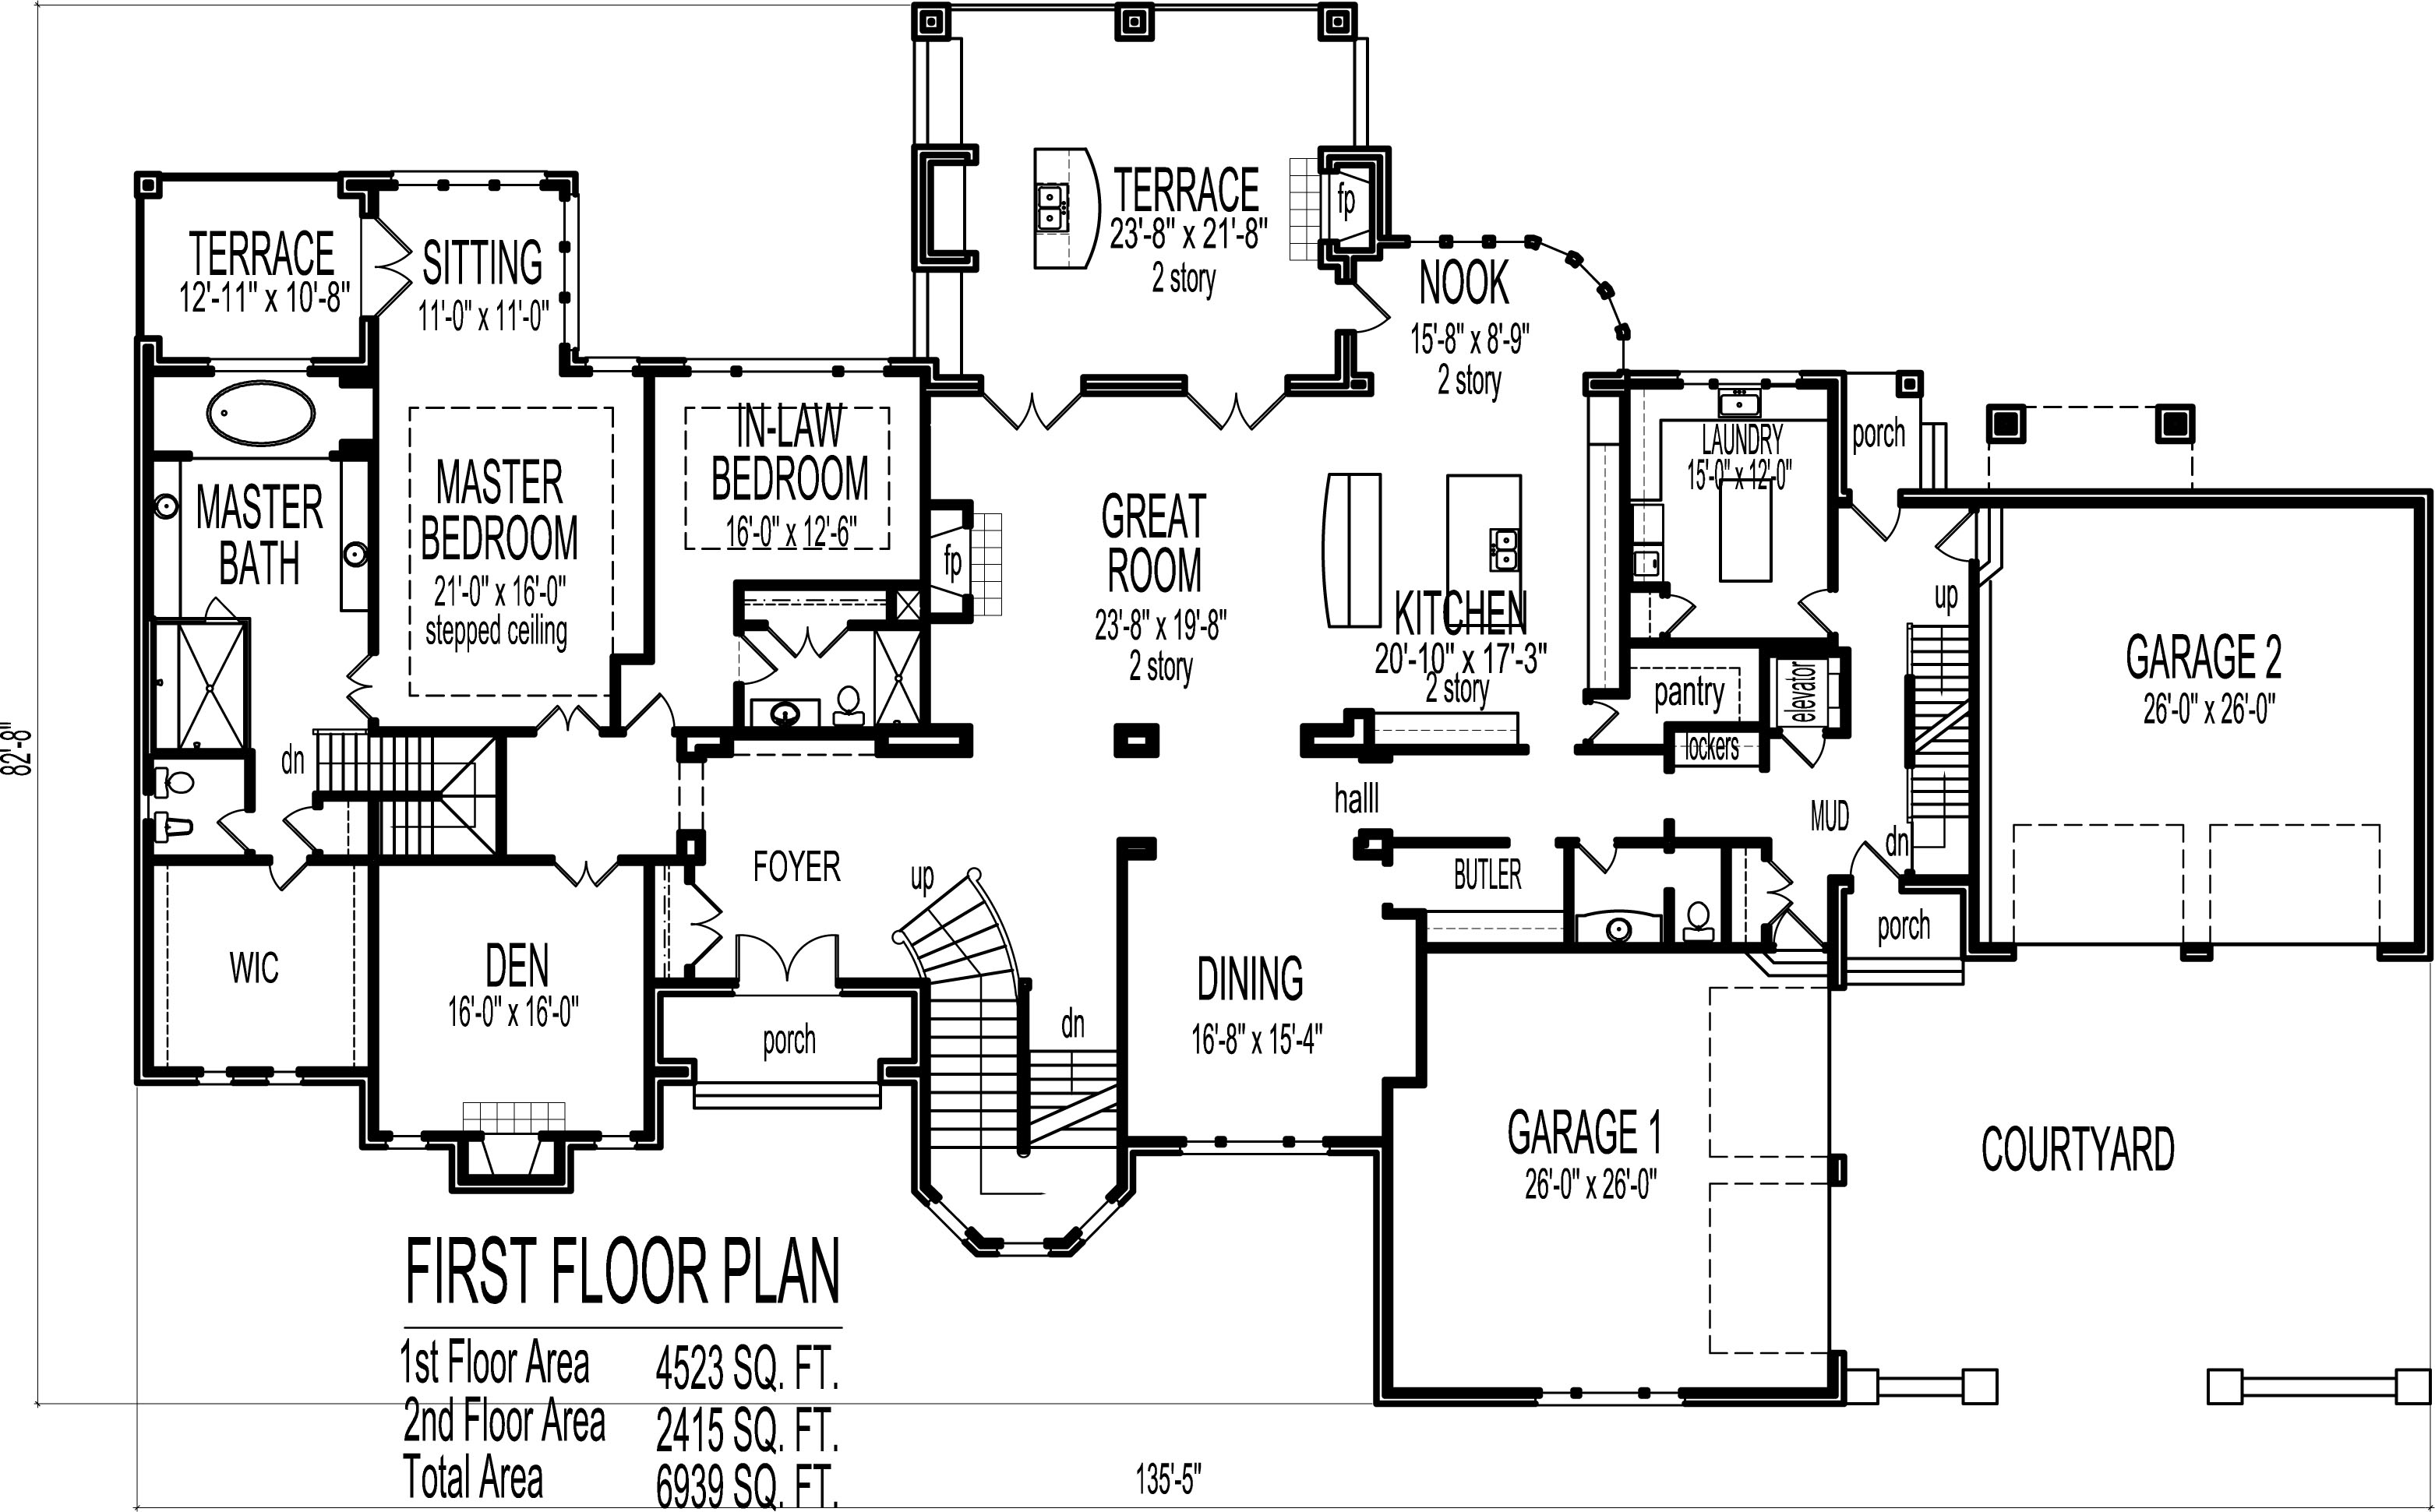 Mansion house floor plans blueprints 6 bedroom 2 story Mansion house designs